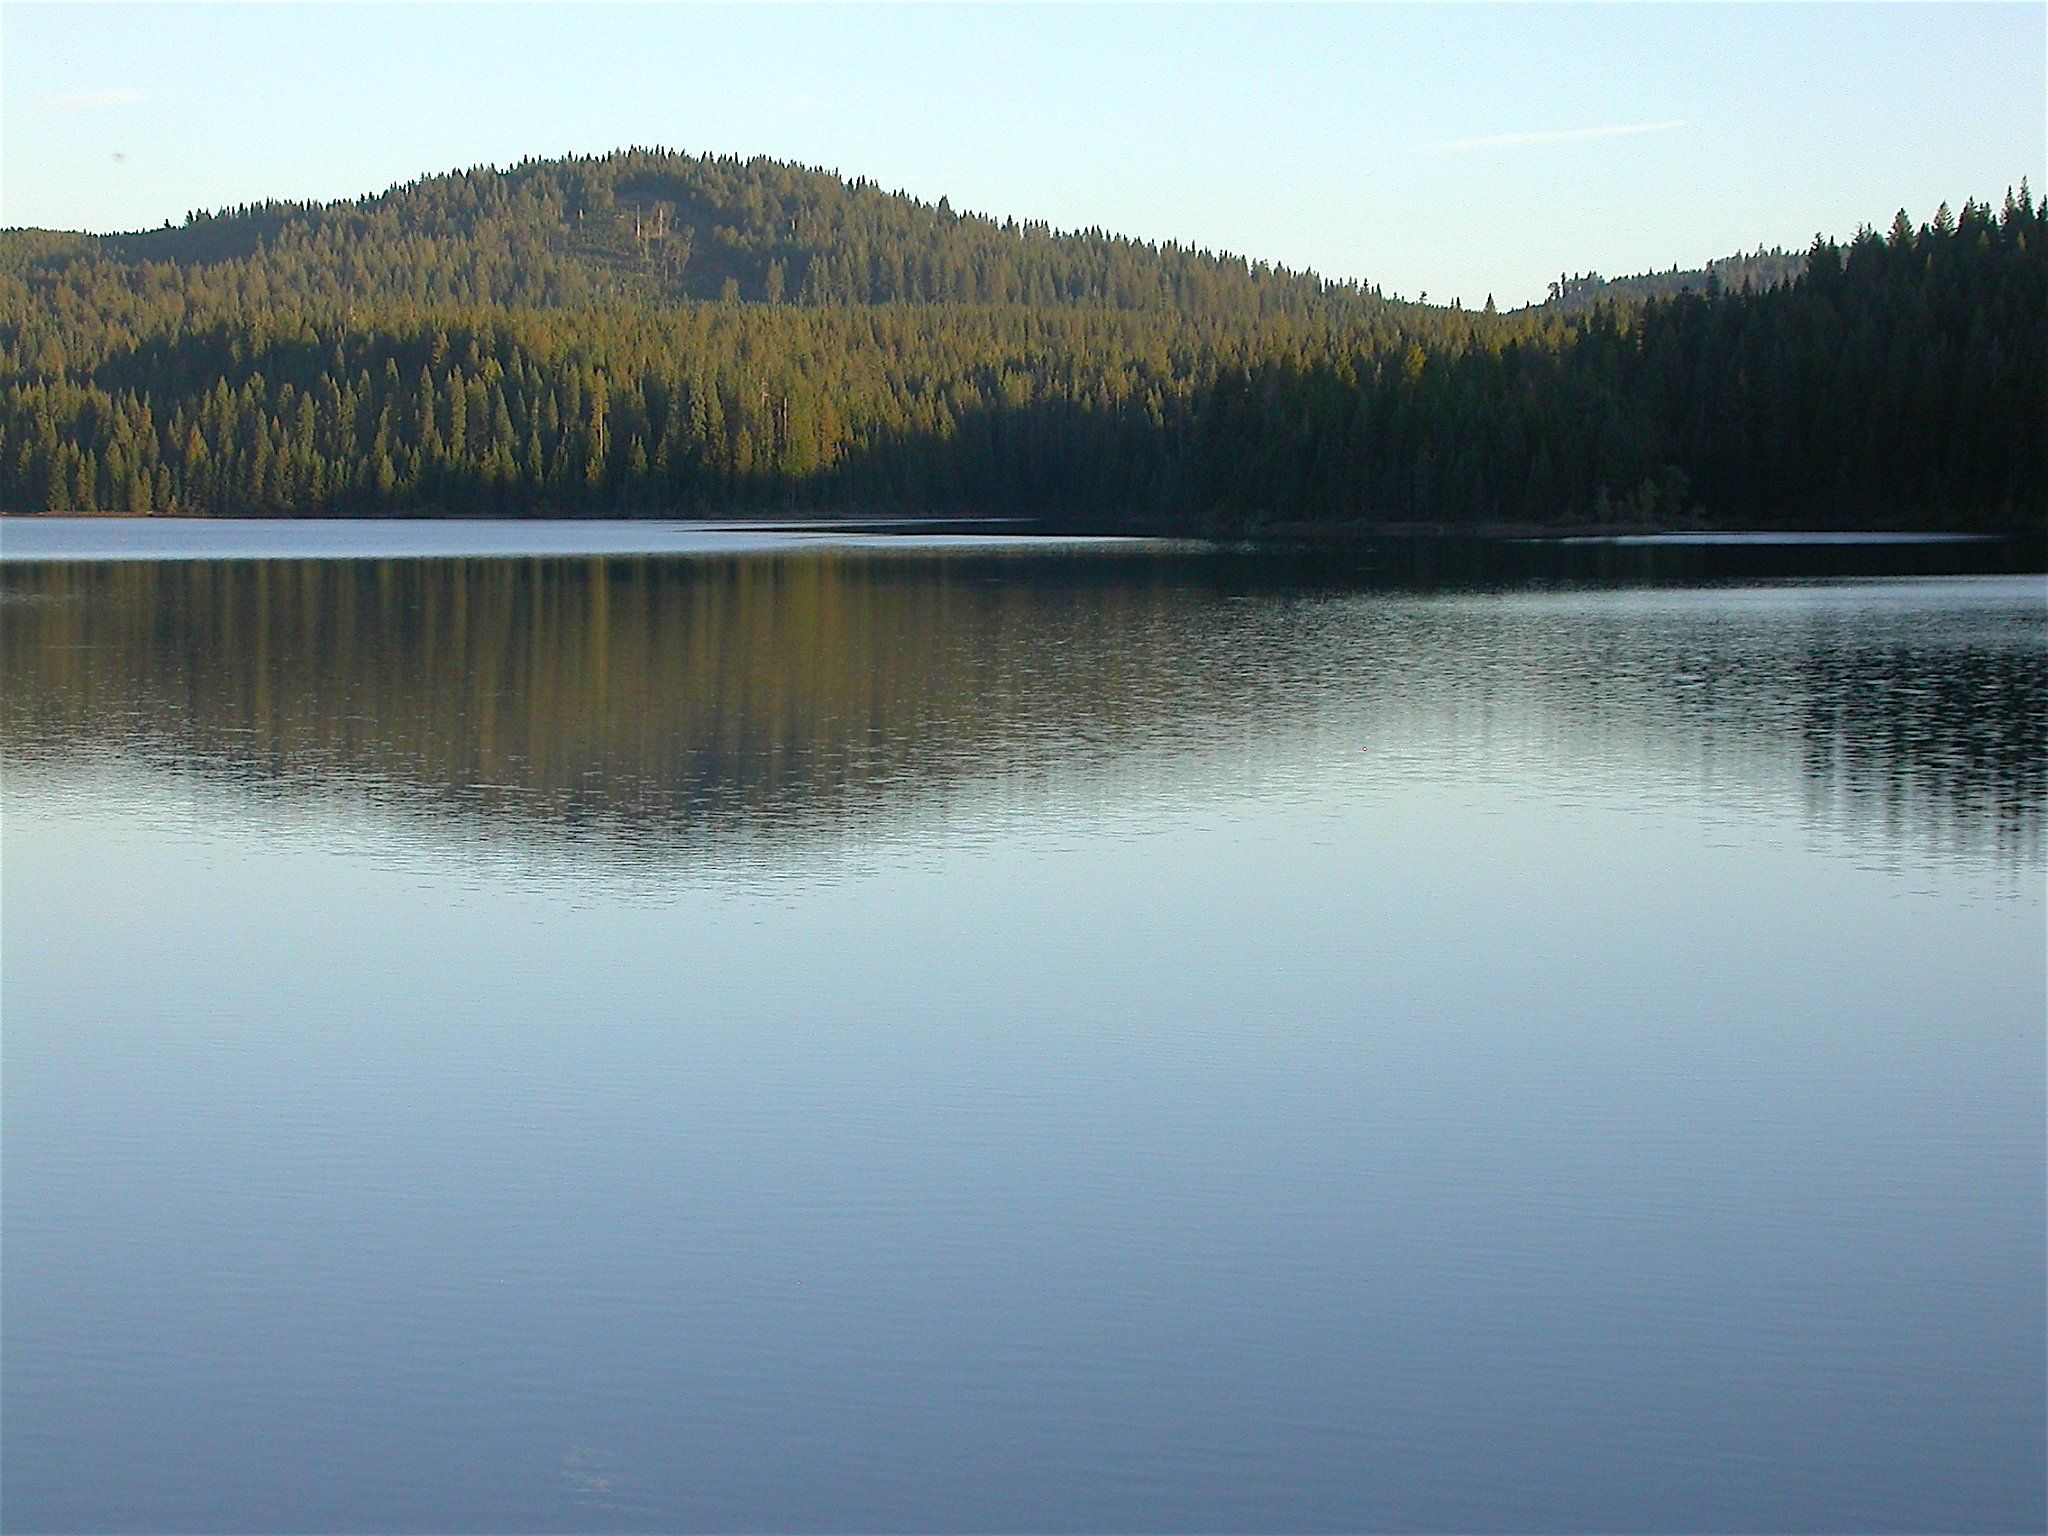 northern california lakes brim with chances for fun on the water